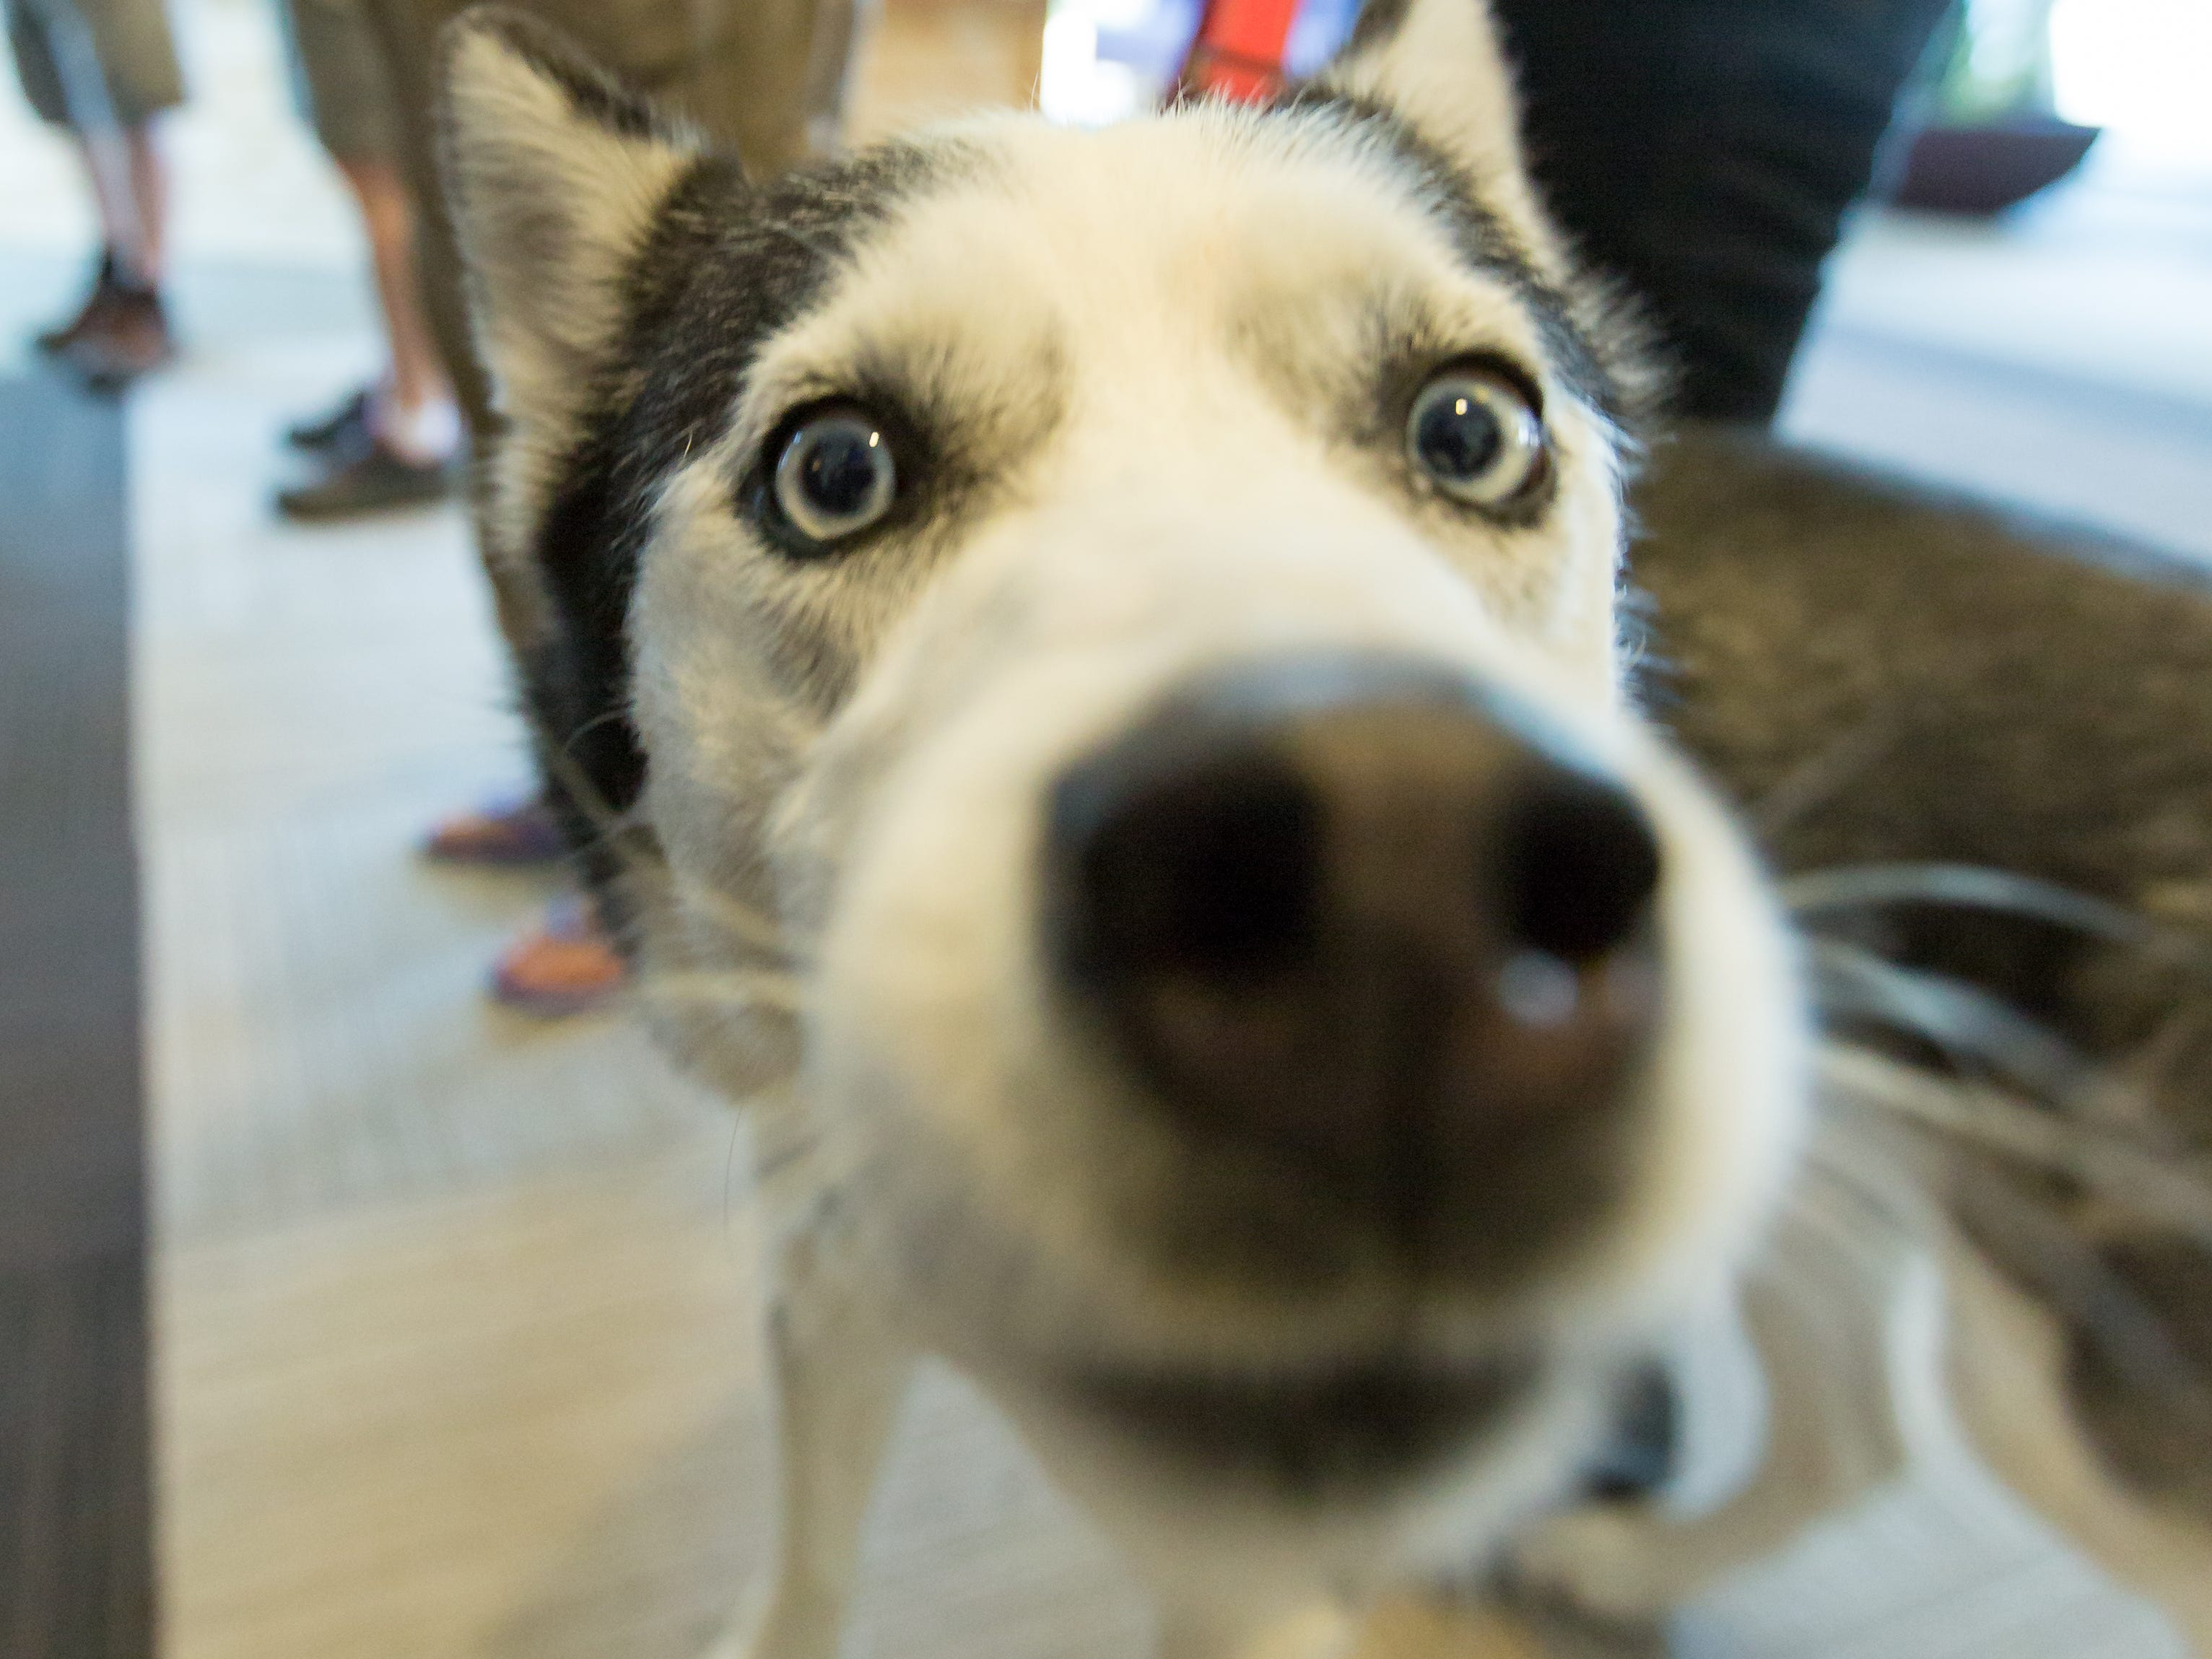 Chivs, 6, an Alaskan Husky, checks out the camera while with his owner Kellianne Taylor on Saturday, September 15, 2018, during the 2018 DogCruces Pet Expo at the Las Cruces Convention Center.